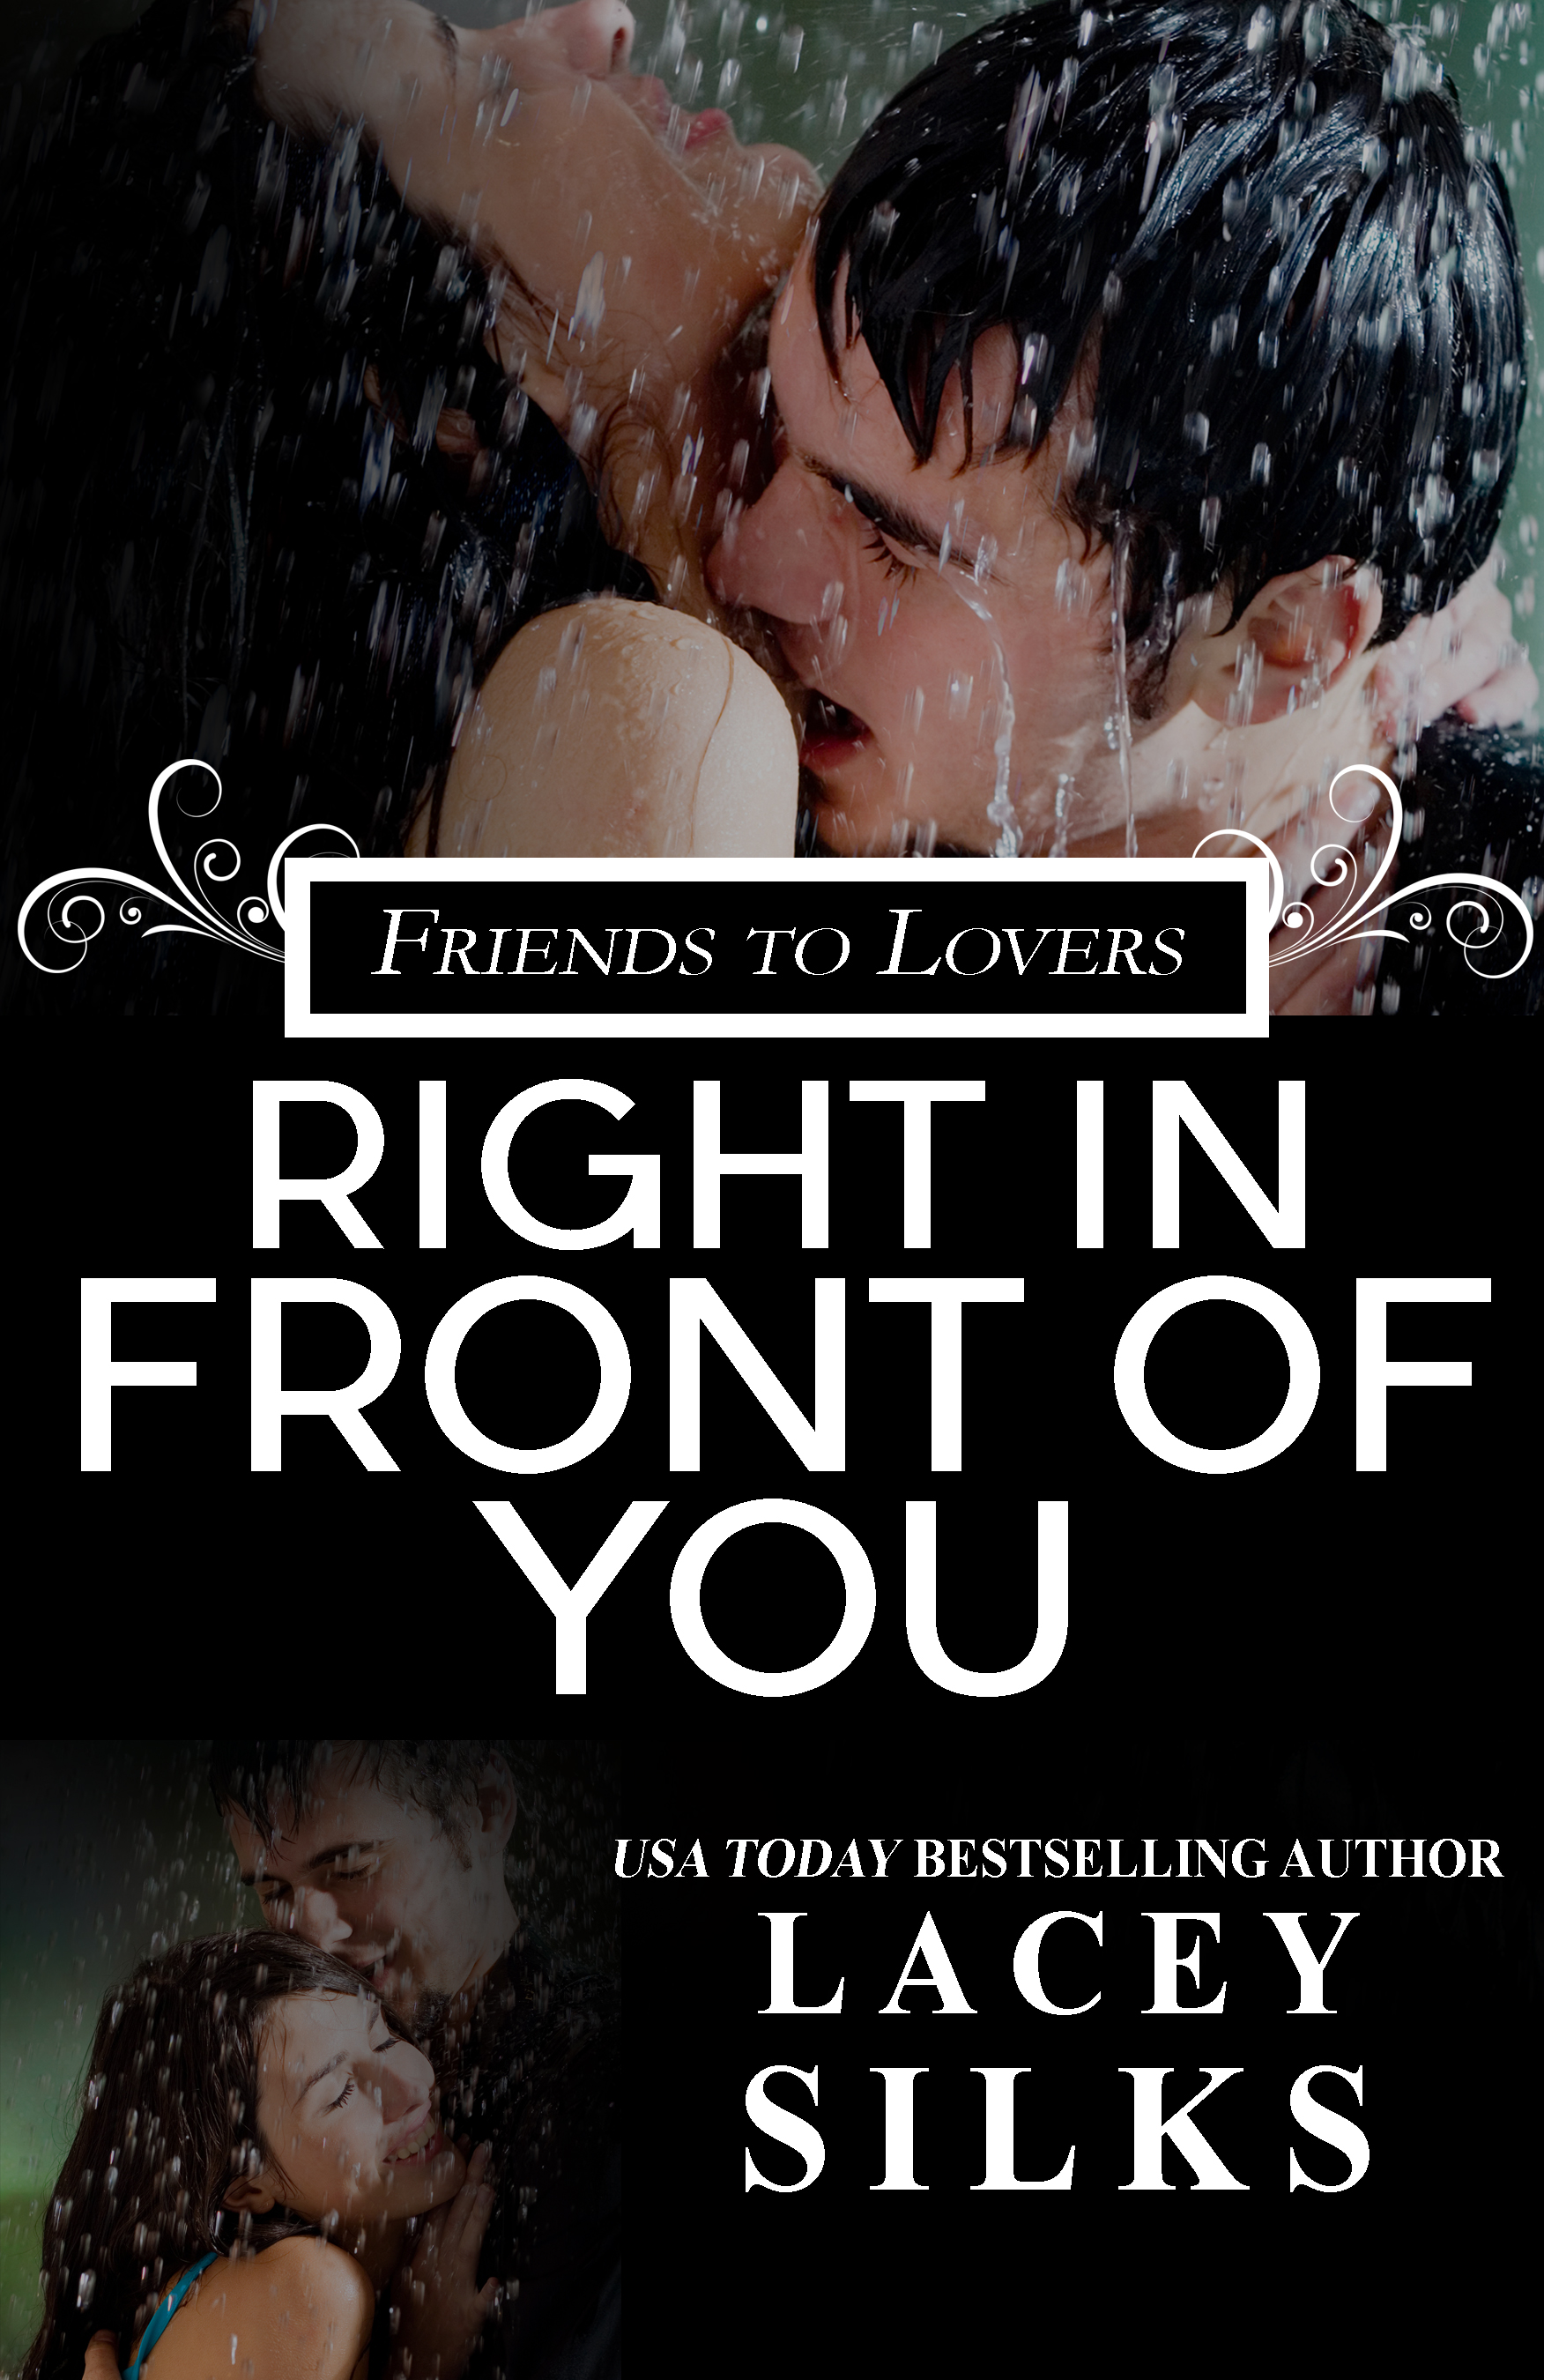 Right in front of you ebook3